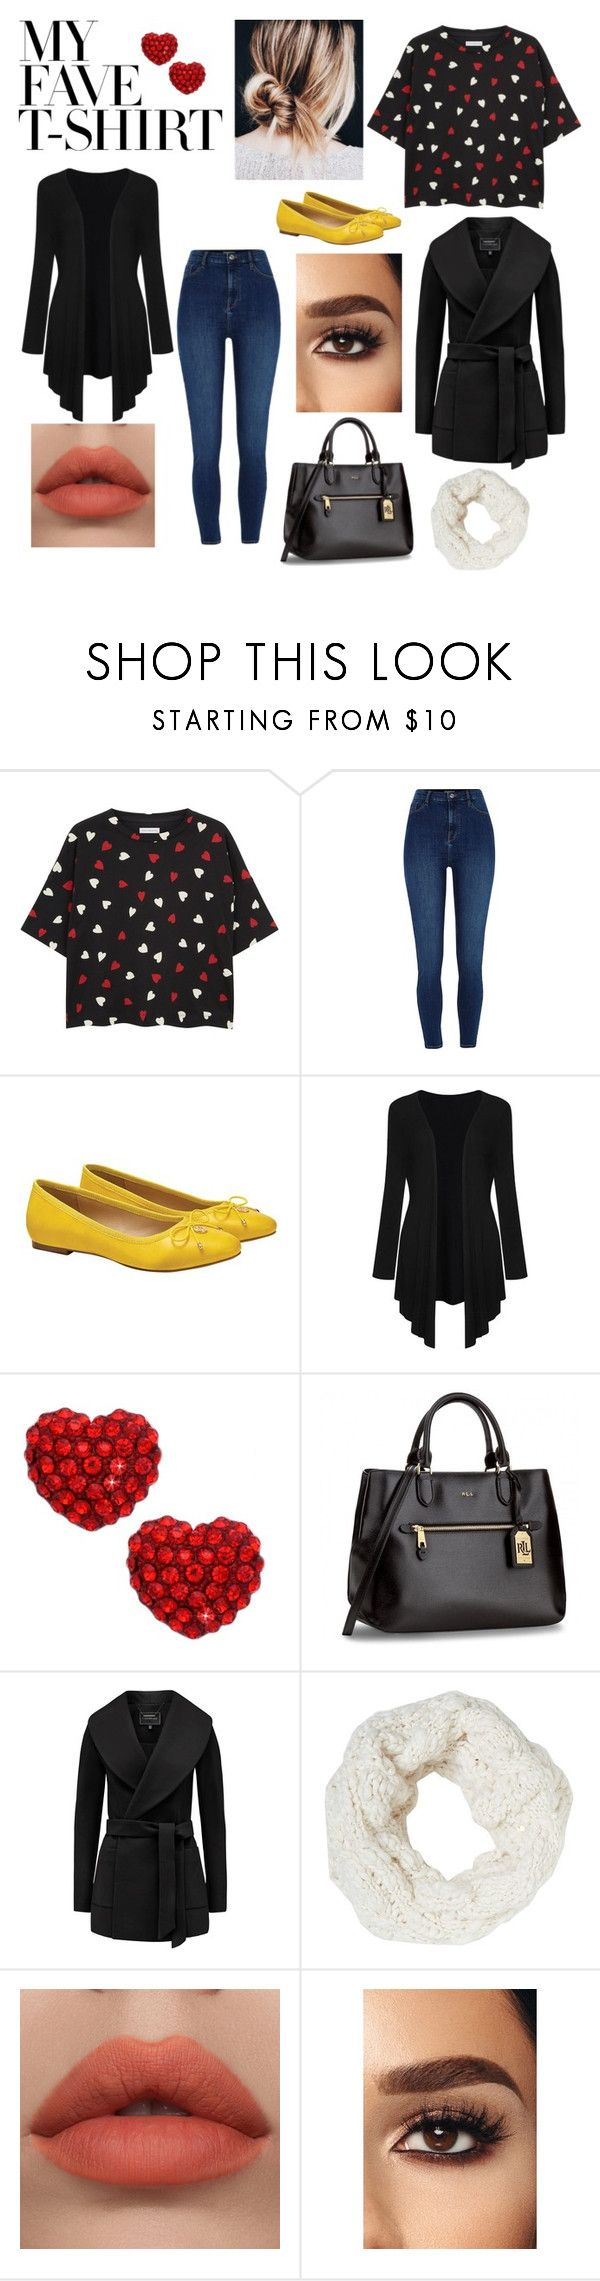 """My Fave Tshirt"" by stockton520 ❤ liked on Polyvore featuring River Island, WithChic, Betsey Johnson and MyFaveTshirt"